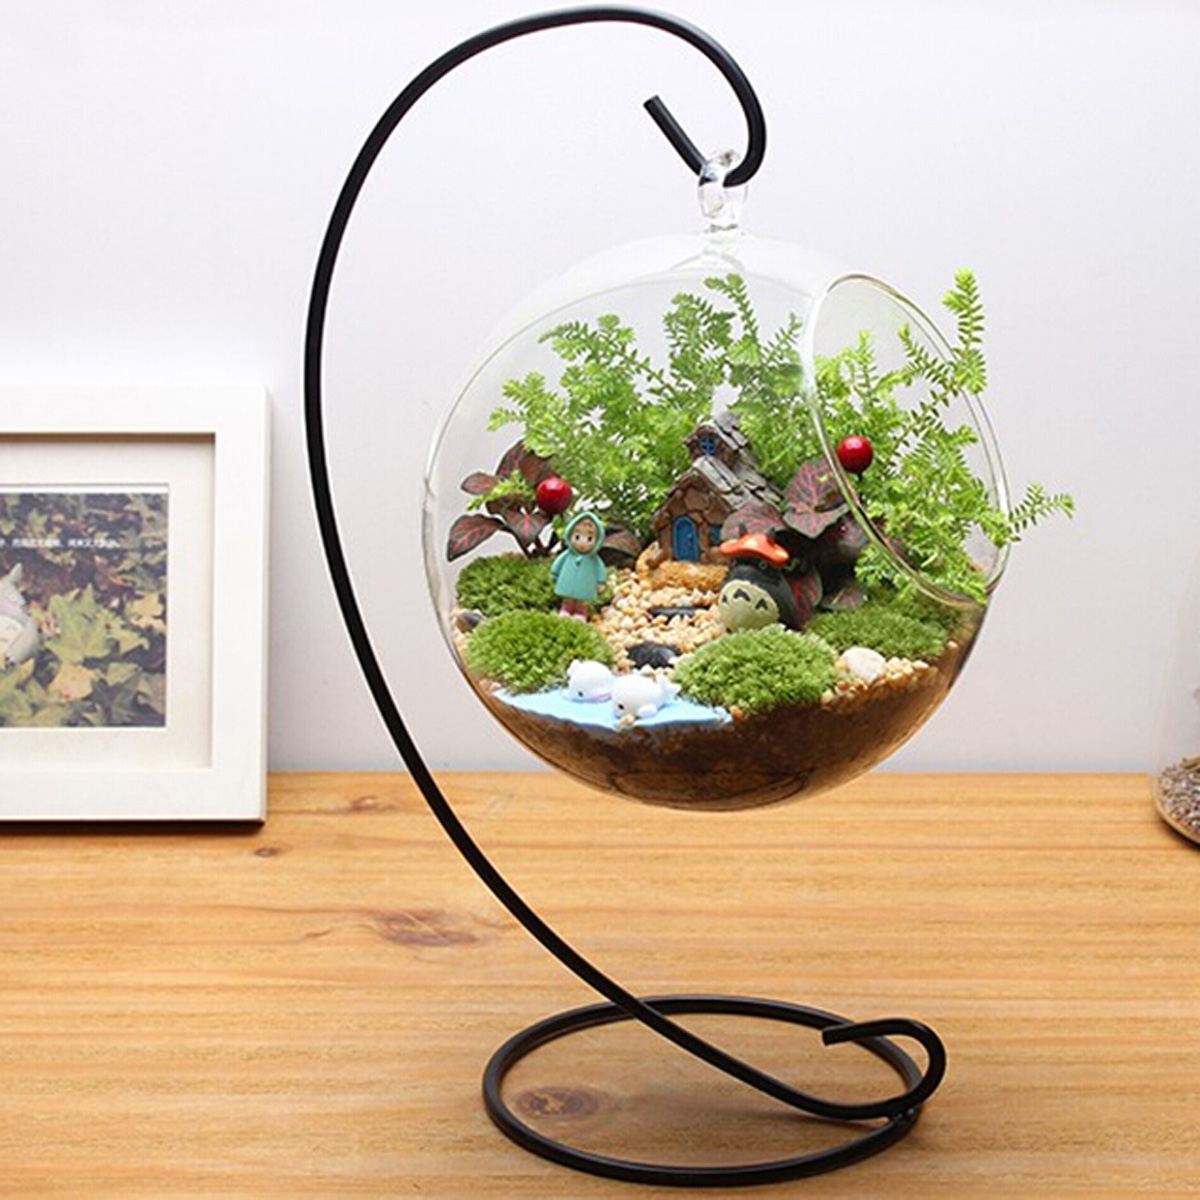 Black Metal Iron Stand Holder For Hanging Plant Pot Plant ... on Hanging Plants Stand  id=85061